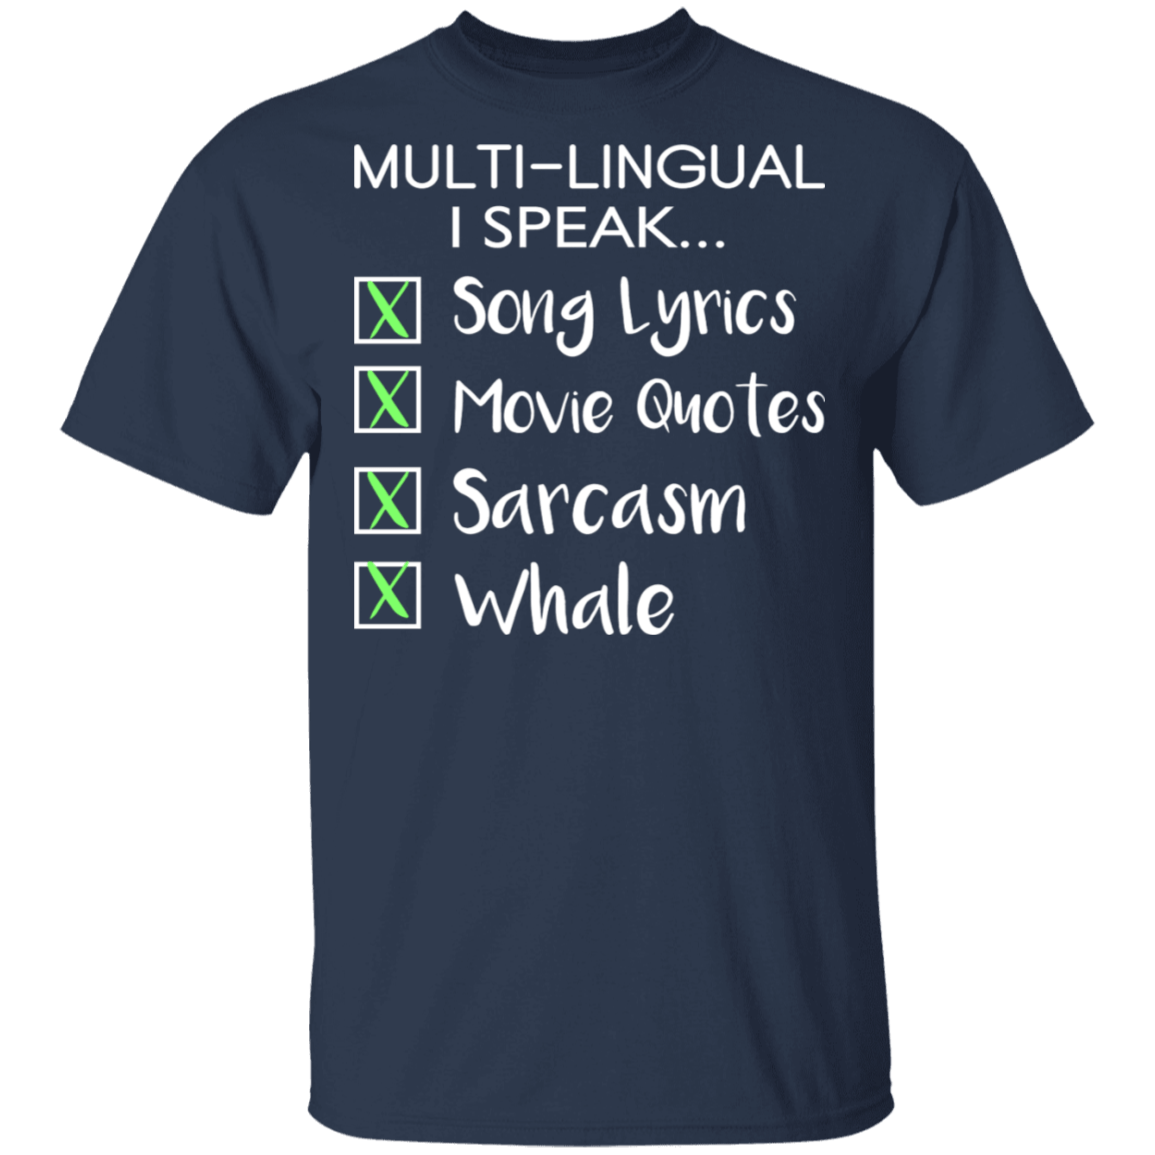 Show everyone how you are multi-lingual!